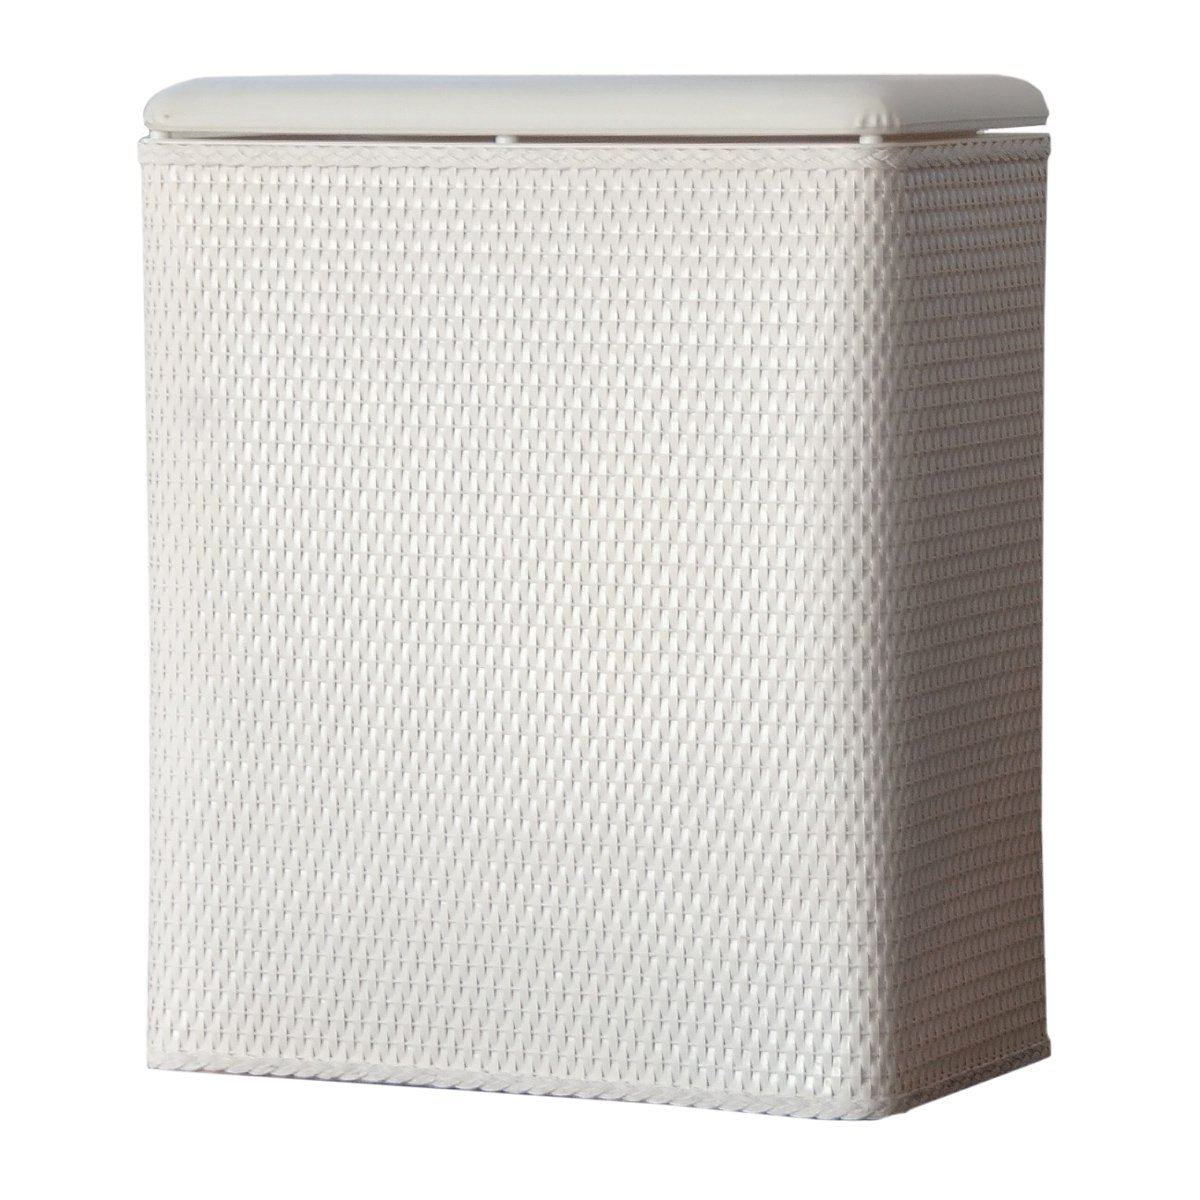 LaMont Home Carter Upright Wicker Laundry Hamper with Coordinating Padded Vinyl Lid, Chocolate 1856048